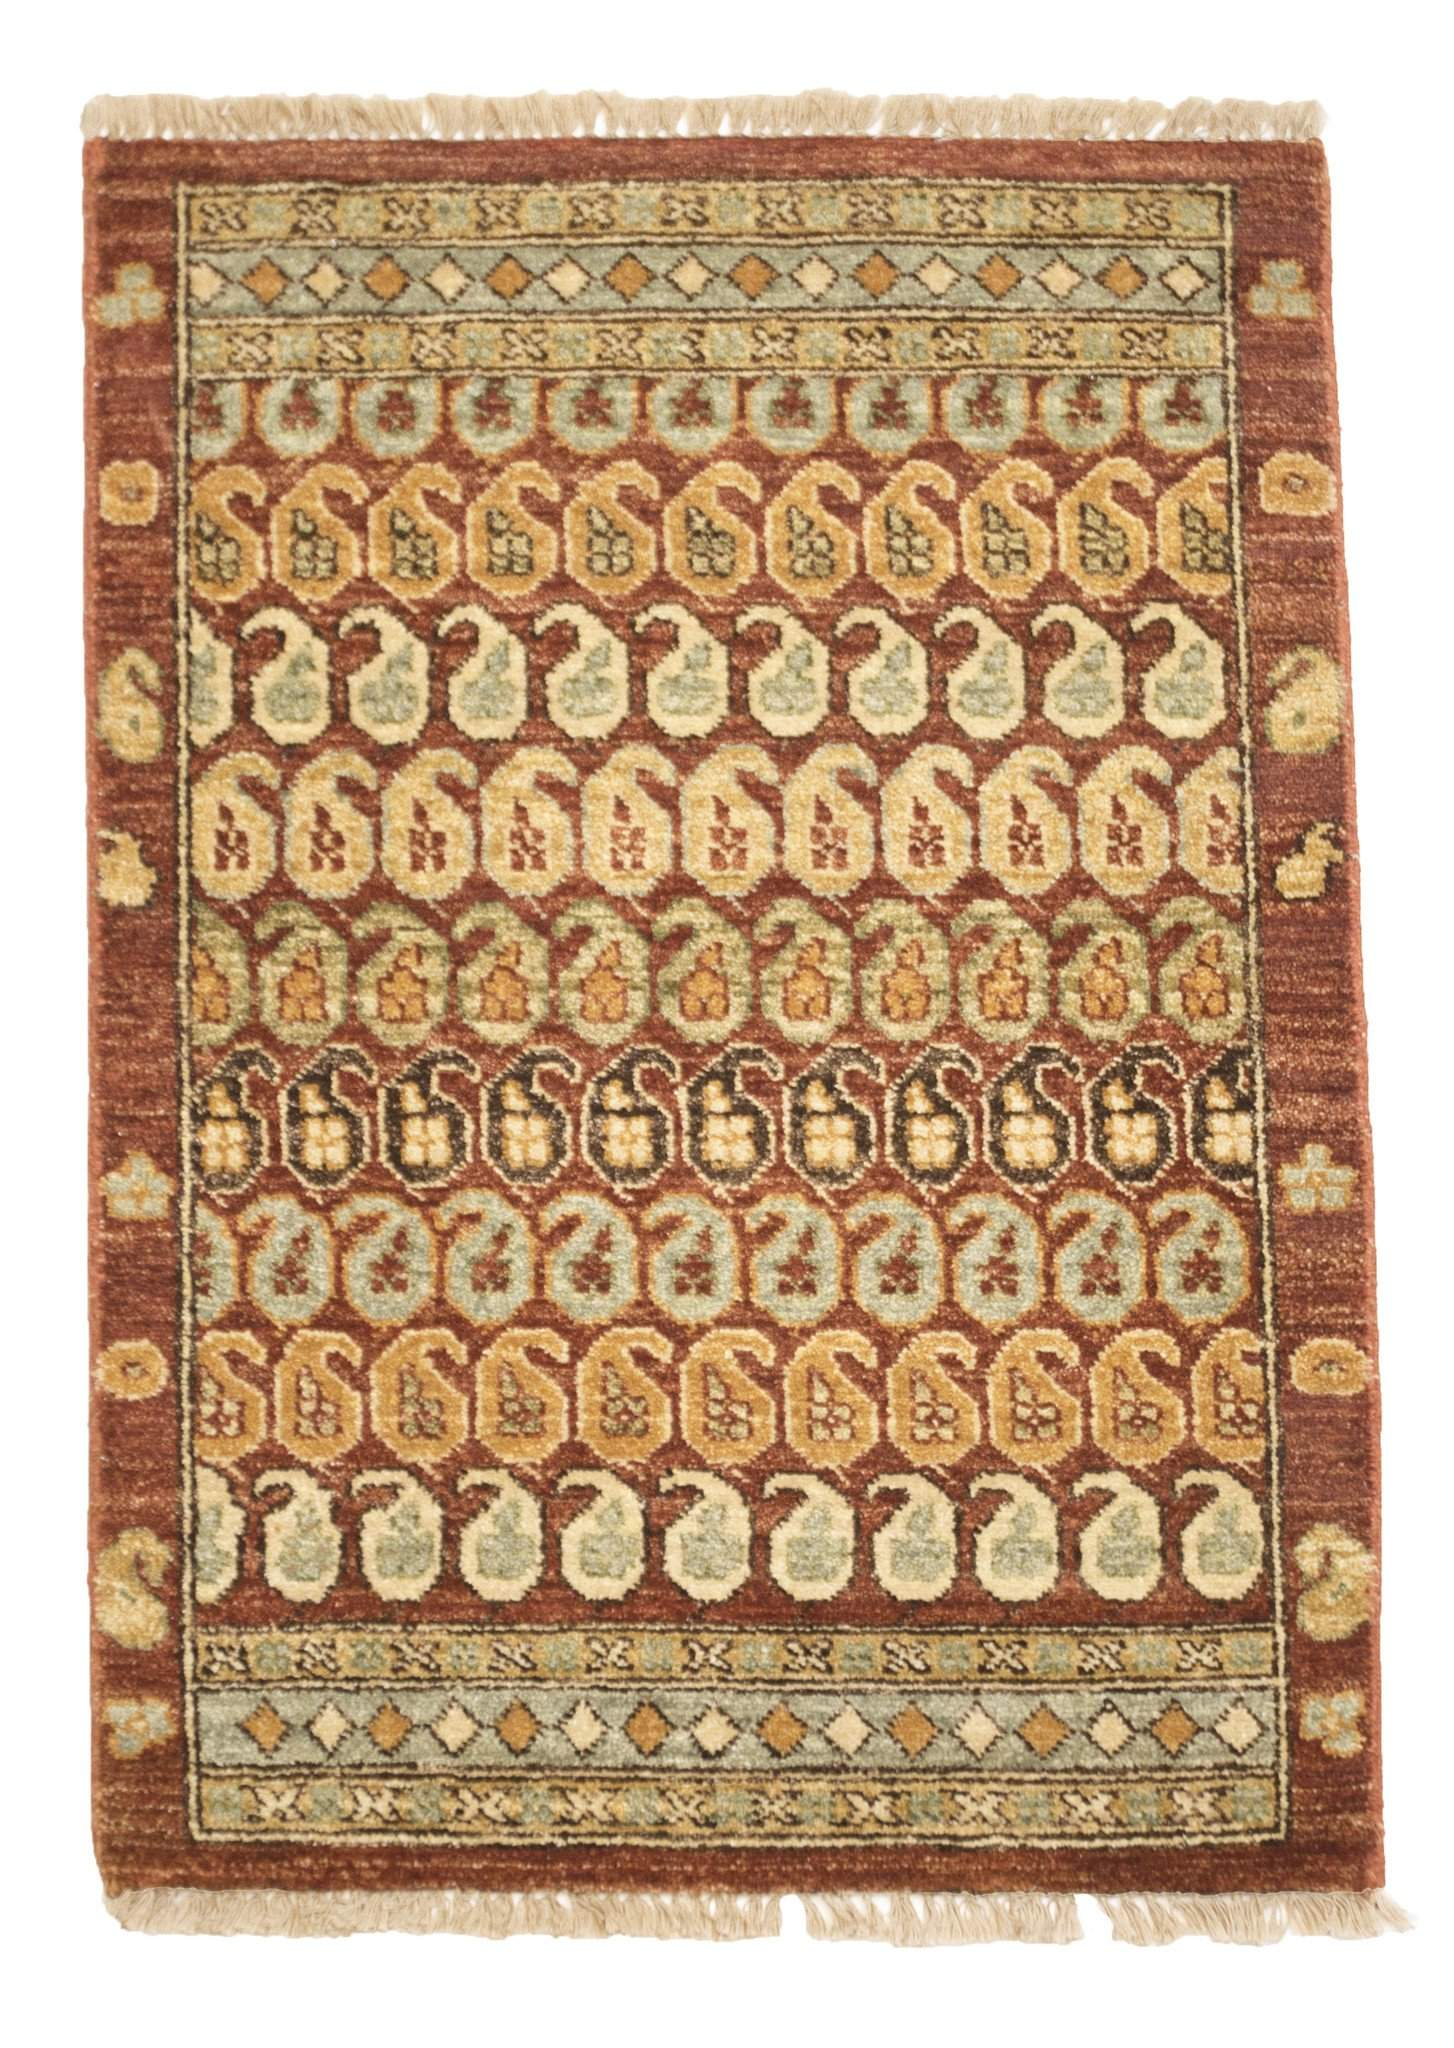 2' x 3' Paisley Hand Knotted Wool Area Rug-Area Rugs-Rug Shop and More